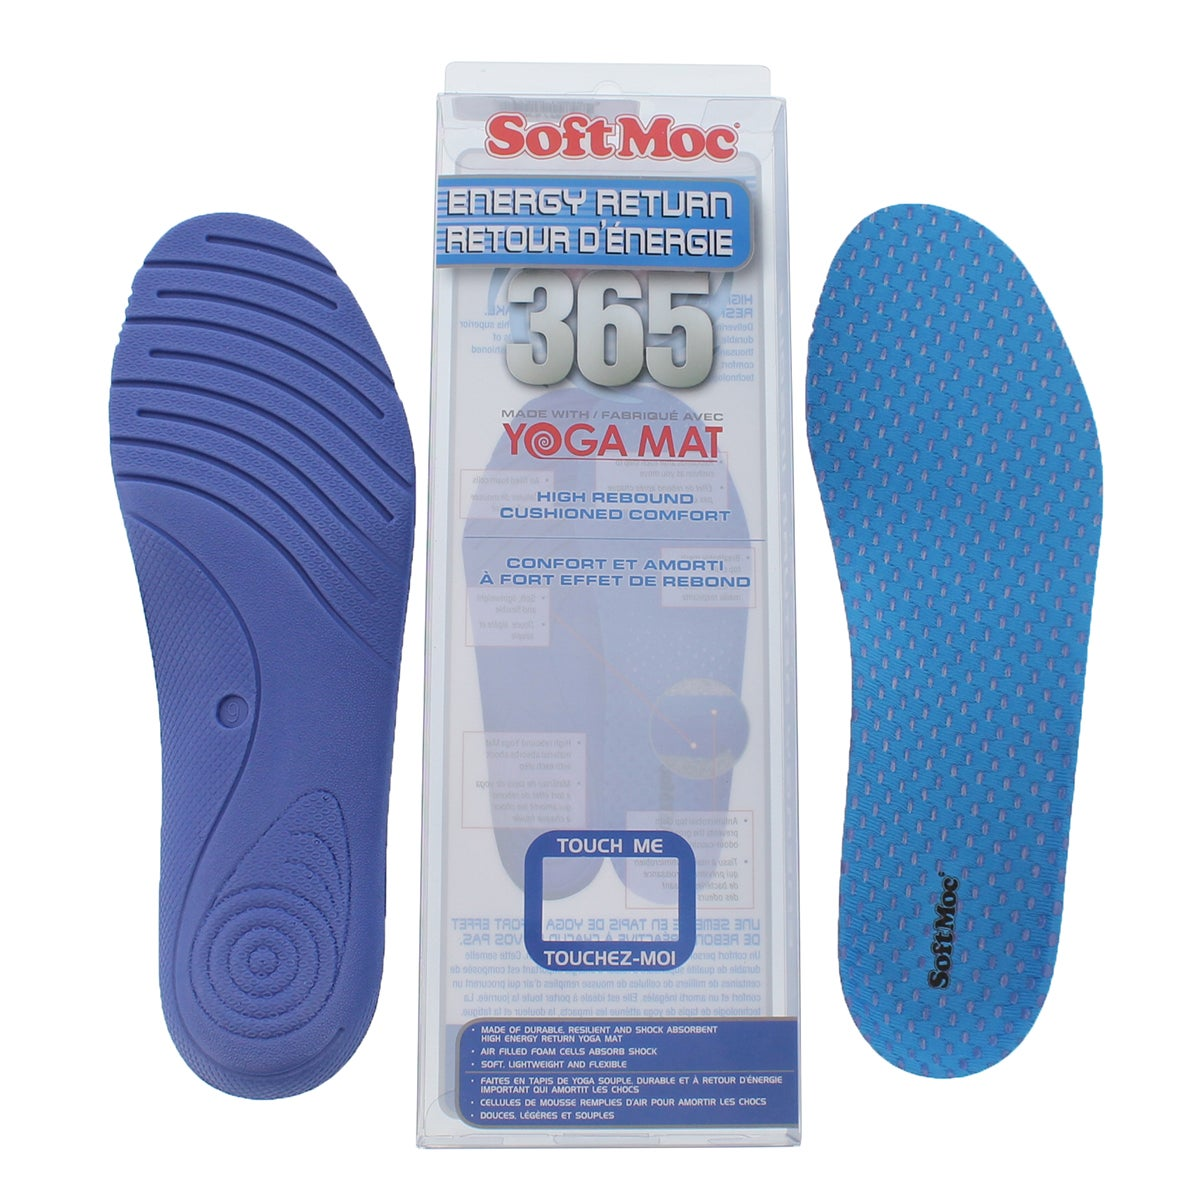 Mns Energy Return Yoga Mat insole